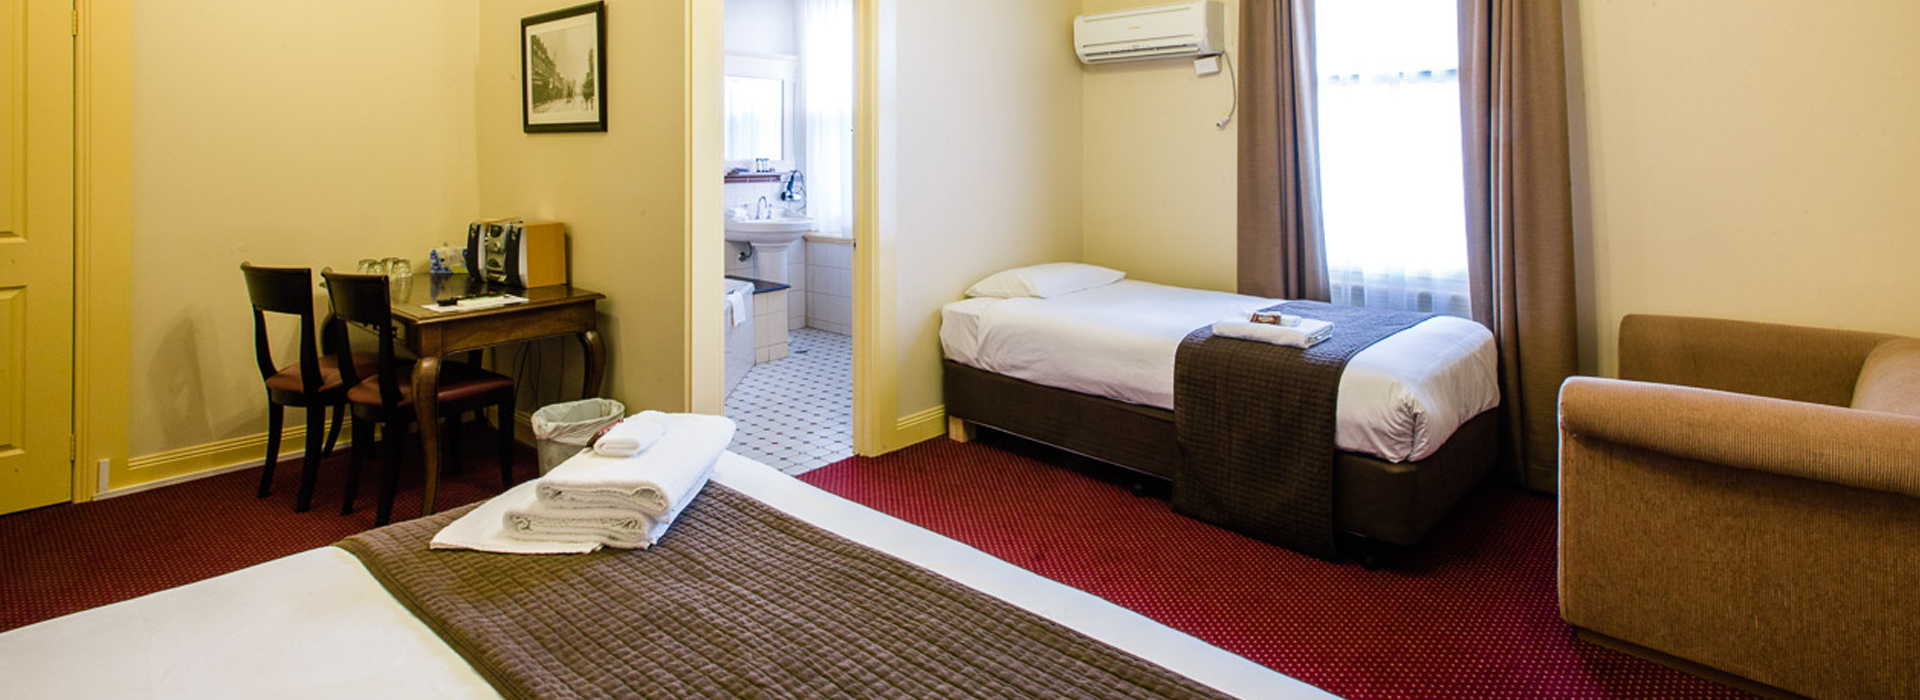 twin accommodation glenferrie hotel hawthorn